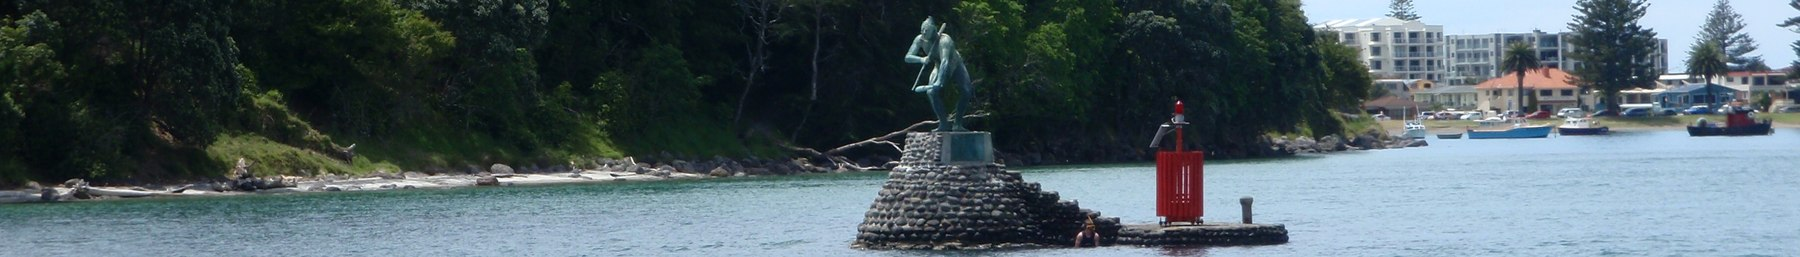 Tauranga banner Harbour entrance with statue.JPG